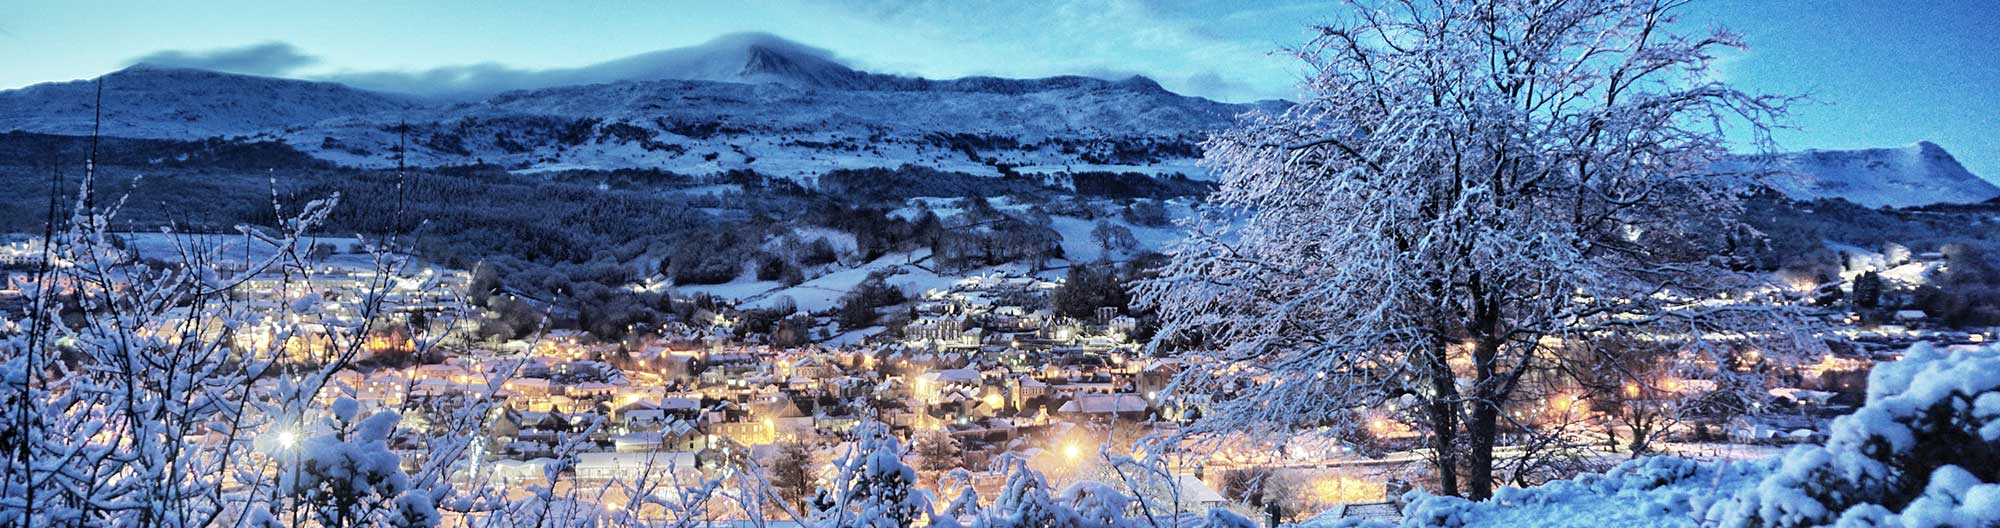 Dolgellau & Cader Idris on a Snowy Morning in December 2017